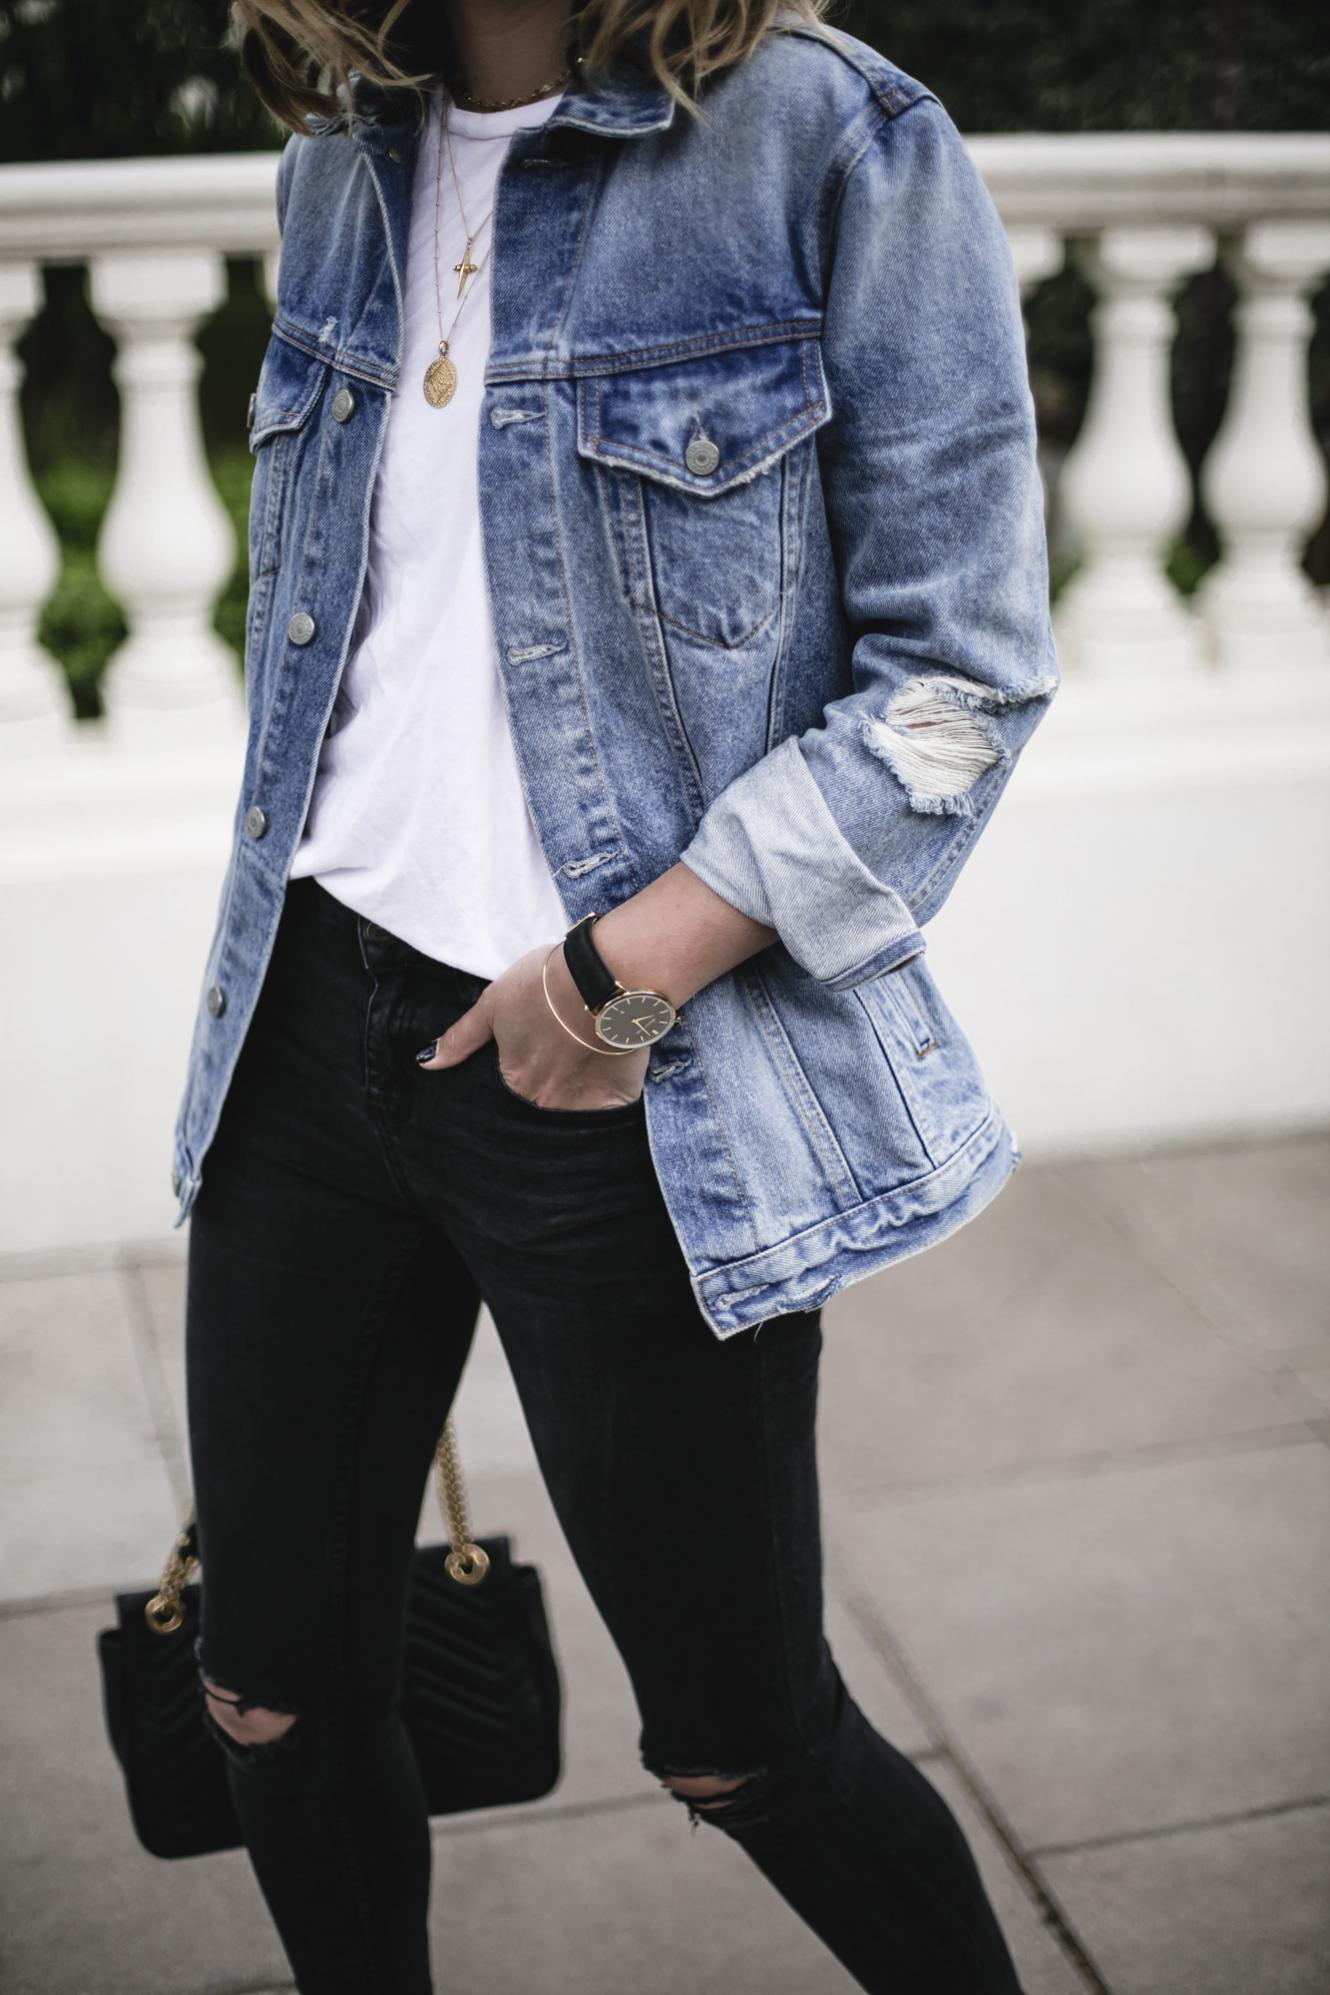 Emma Hill wears Grlfrnd oversized denim jacket, white t-shirt, black skinny jeans, gold jewellery, Gucci Marmont bag